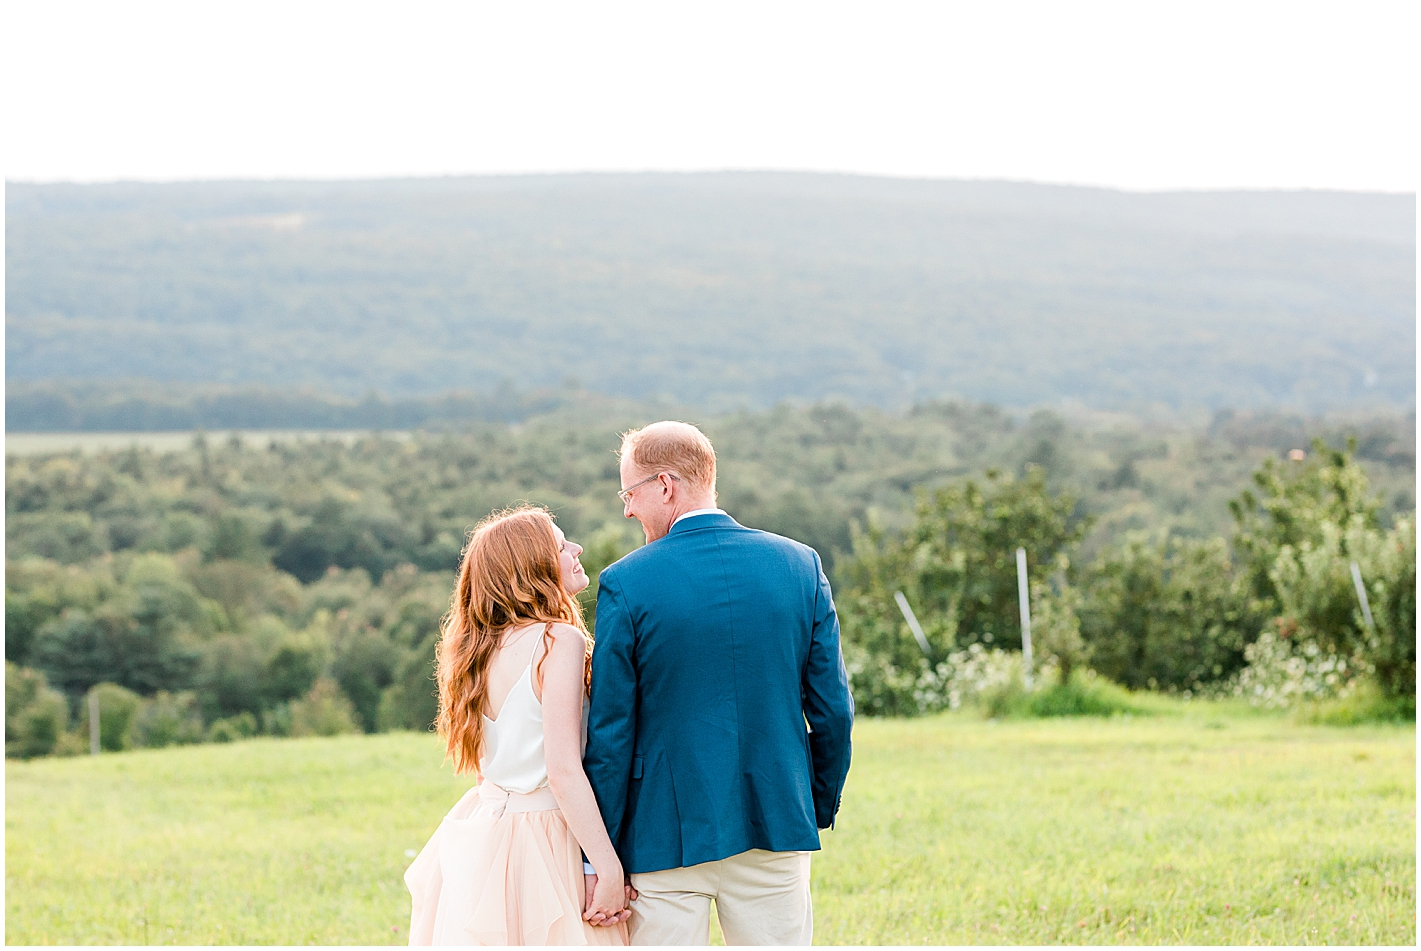 Anniversary Session at Alyson's Orchard New England by Alyssa Parker Photography